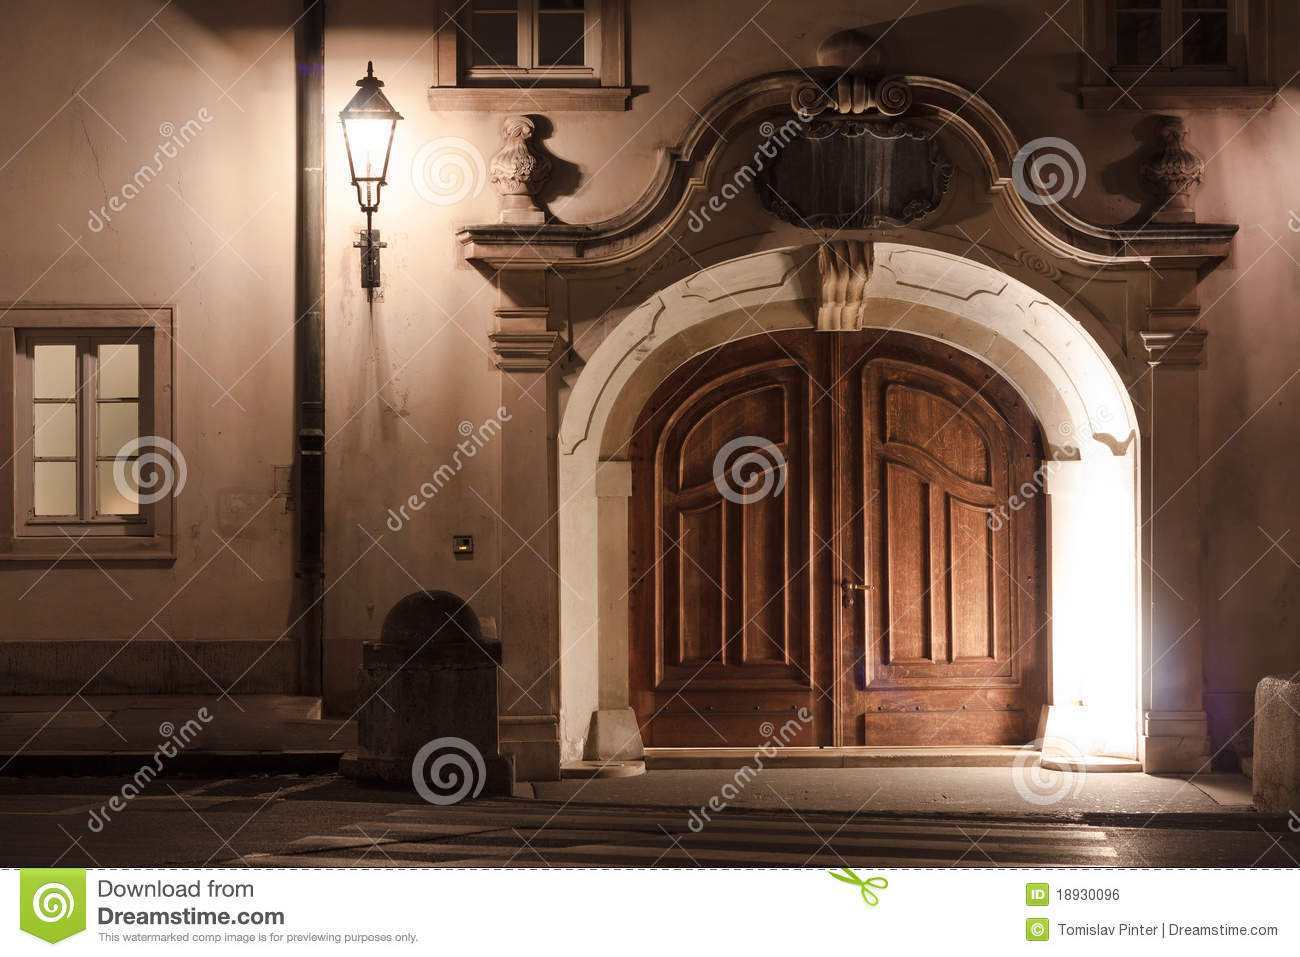 European doors at night & European doors at night stock photo. Image of controlling - 18930096